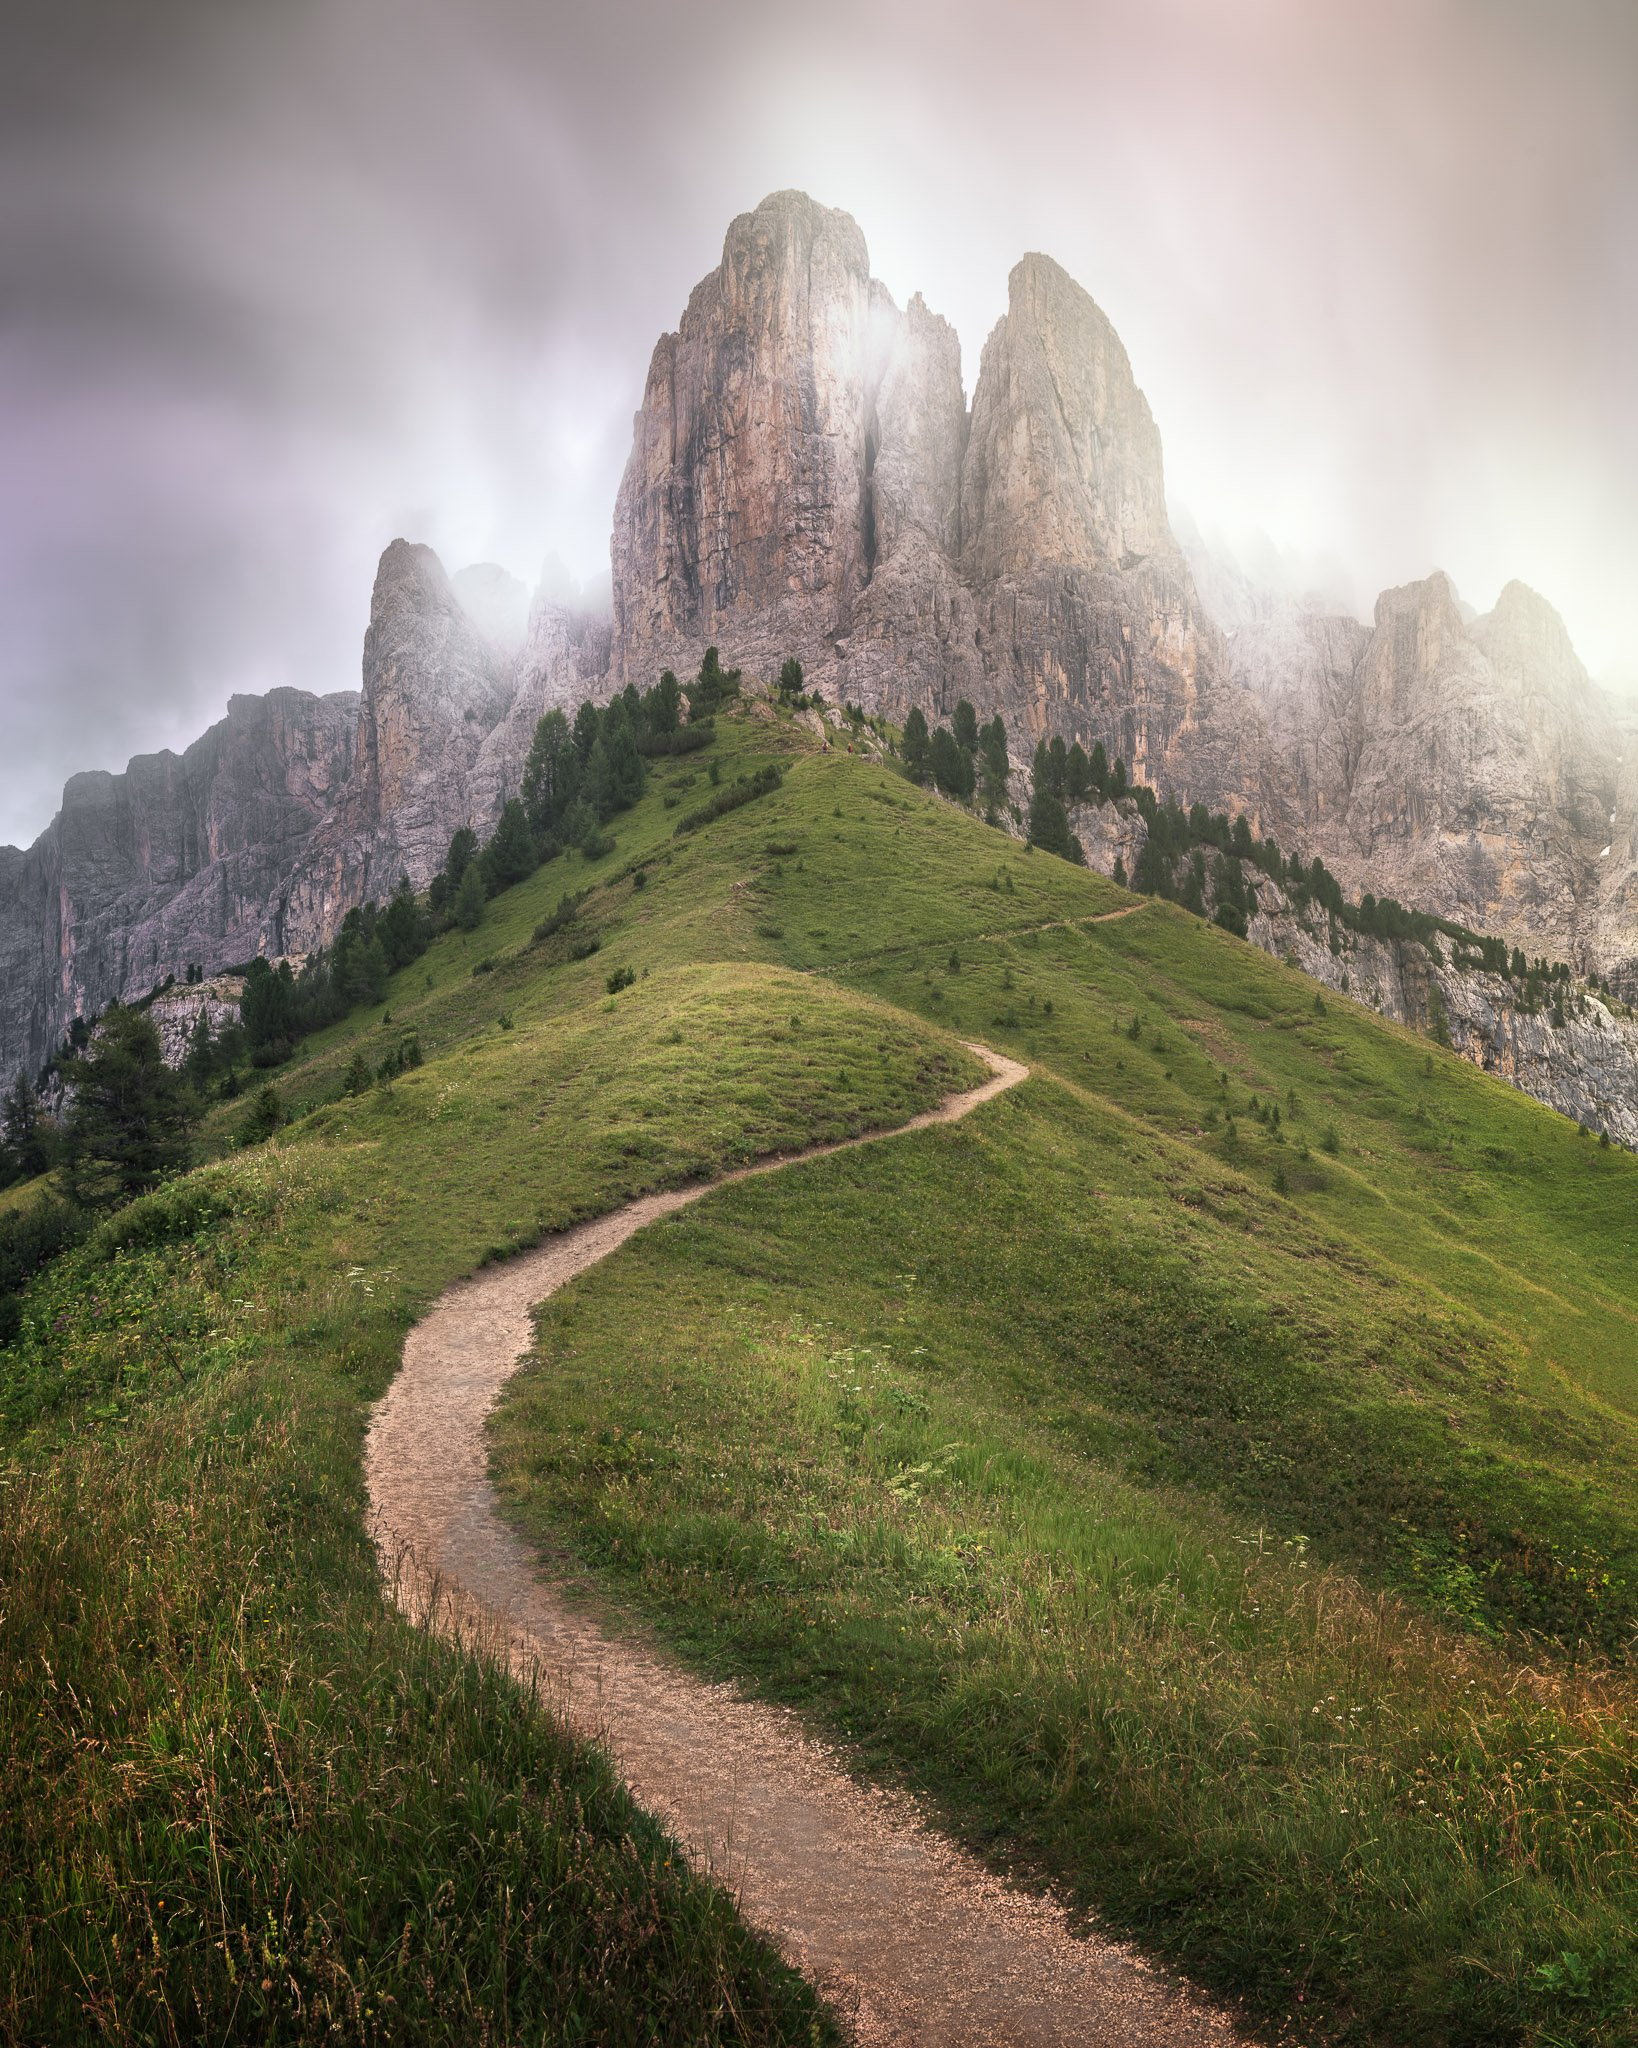 alpine, alps, alto, brunecker, cliff, clouds, dolomites, europe, gardena, grass, green, group, hiking, hill, italia, italian, italy, landscape, light, meadow, morning, mountain, nature, pass, pasture, path, peak, resort, ridge, road, rock, sella, sky, sou, anshar